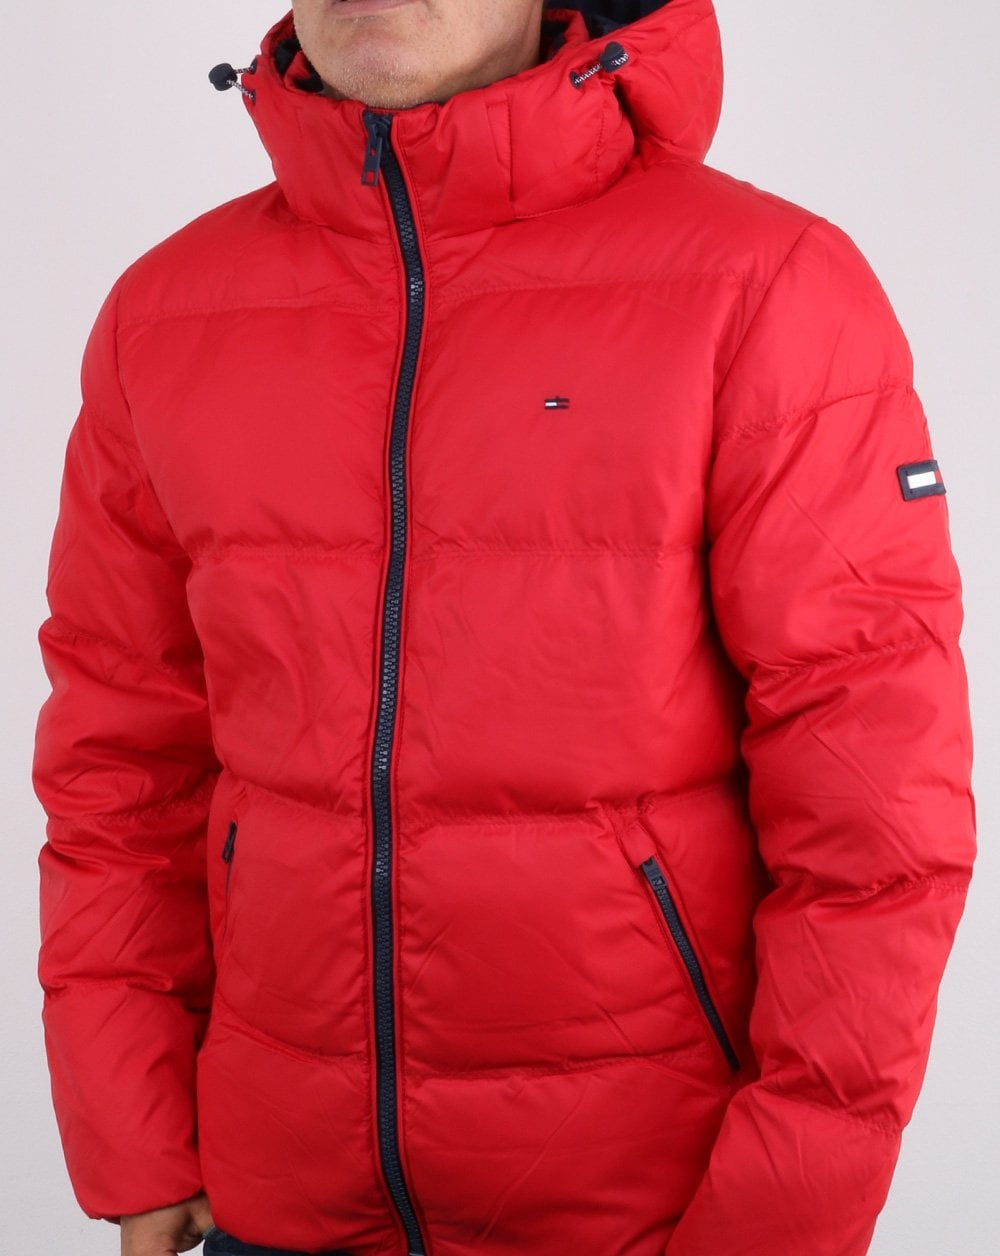 89121f77f6 Tommy Hilfiger Down Jacket Red